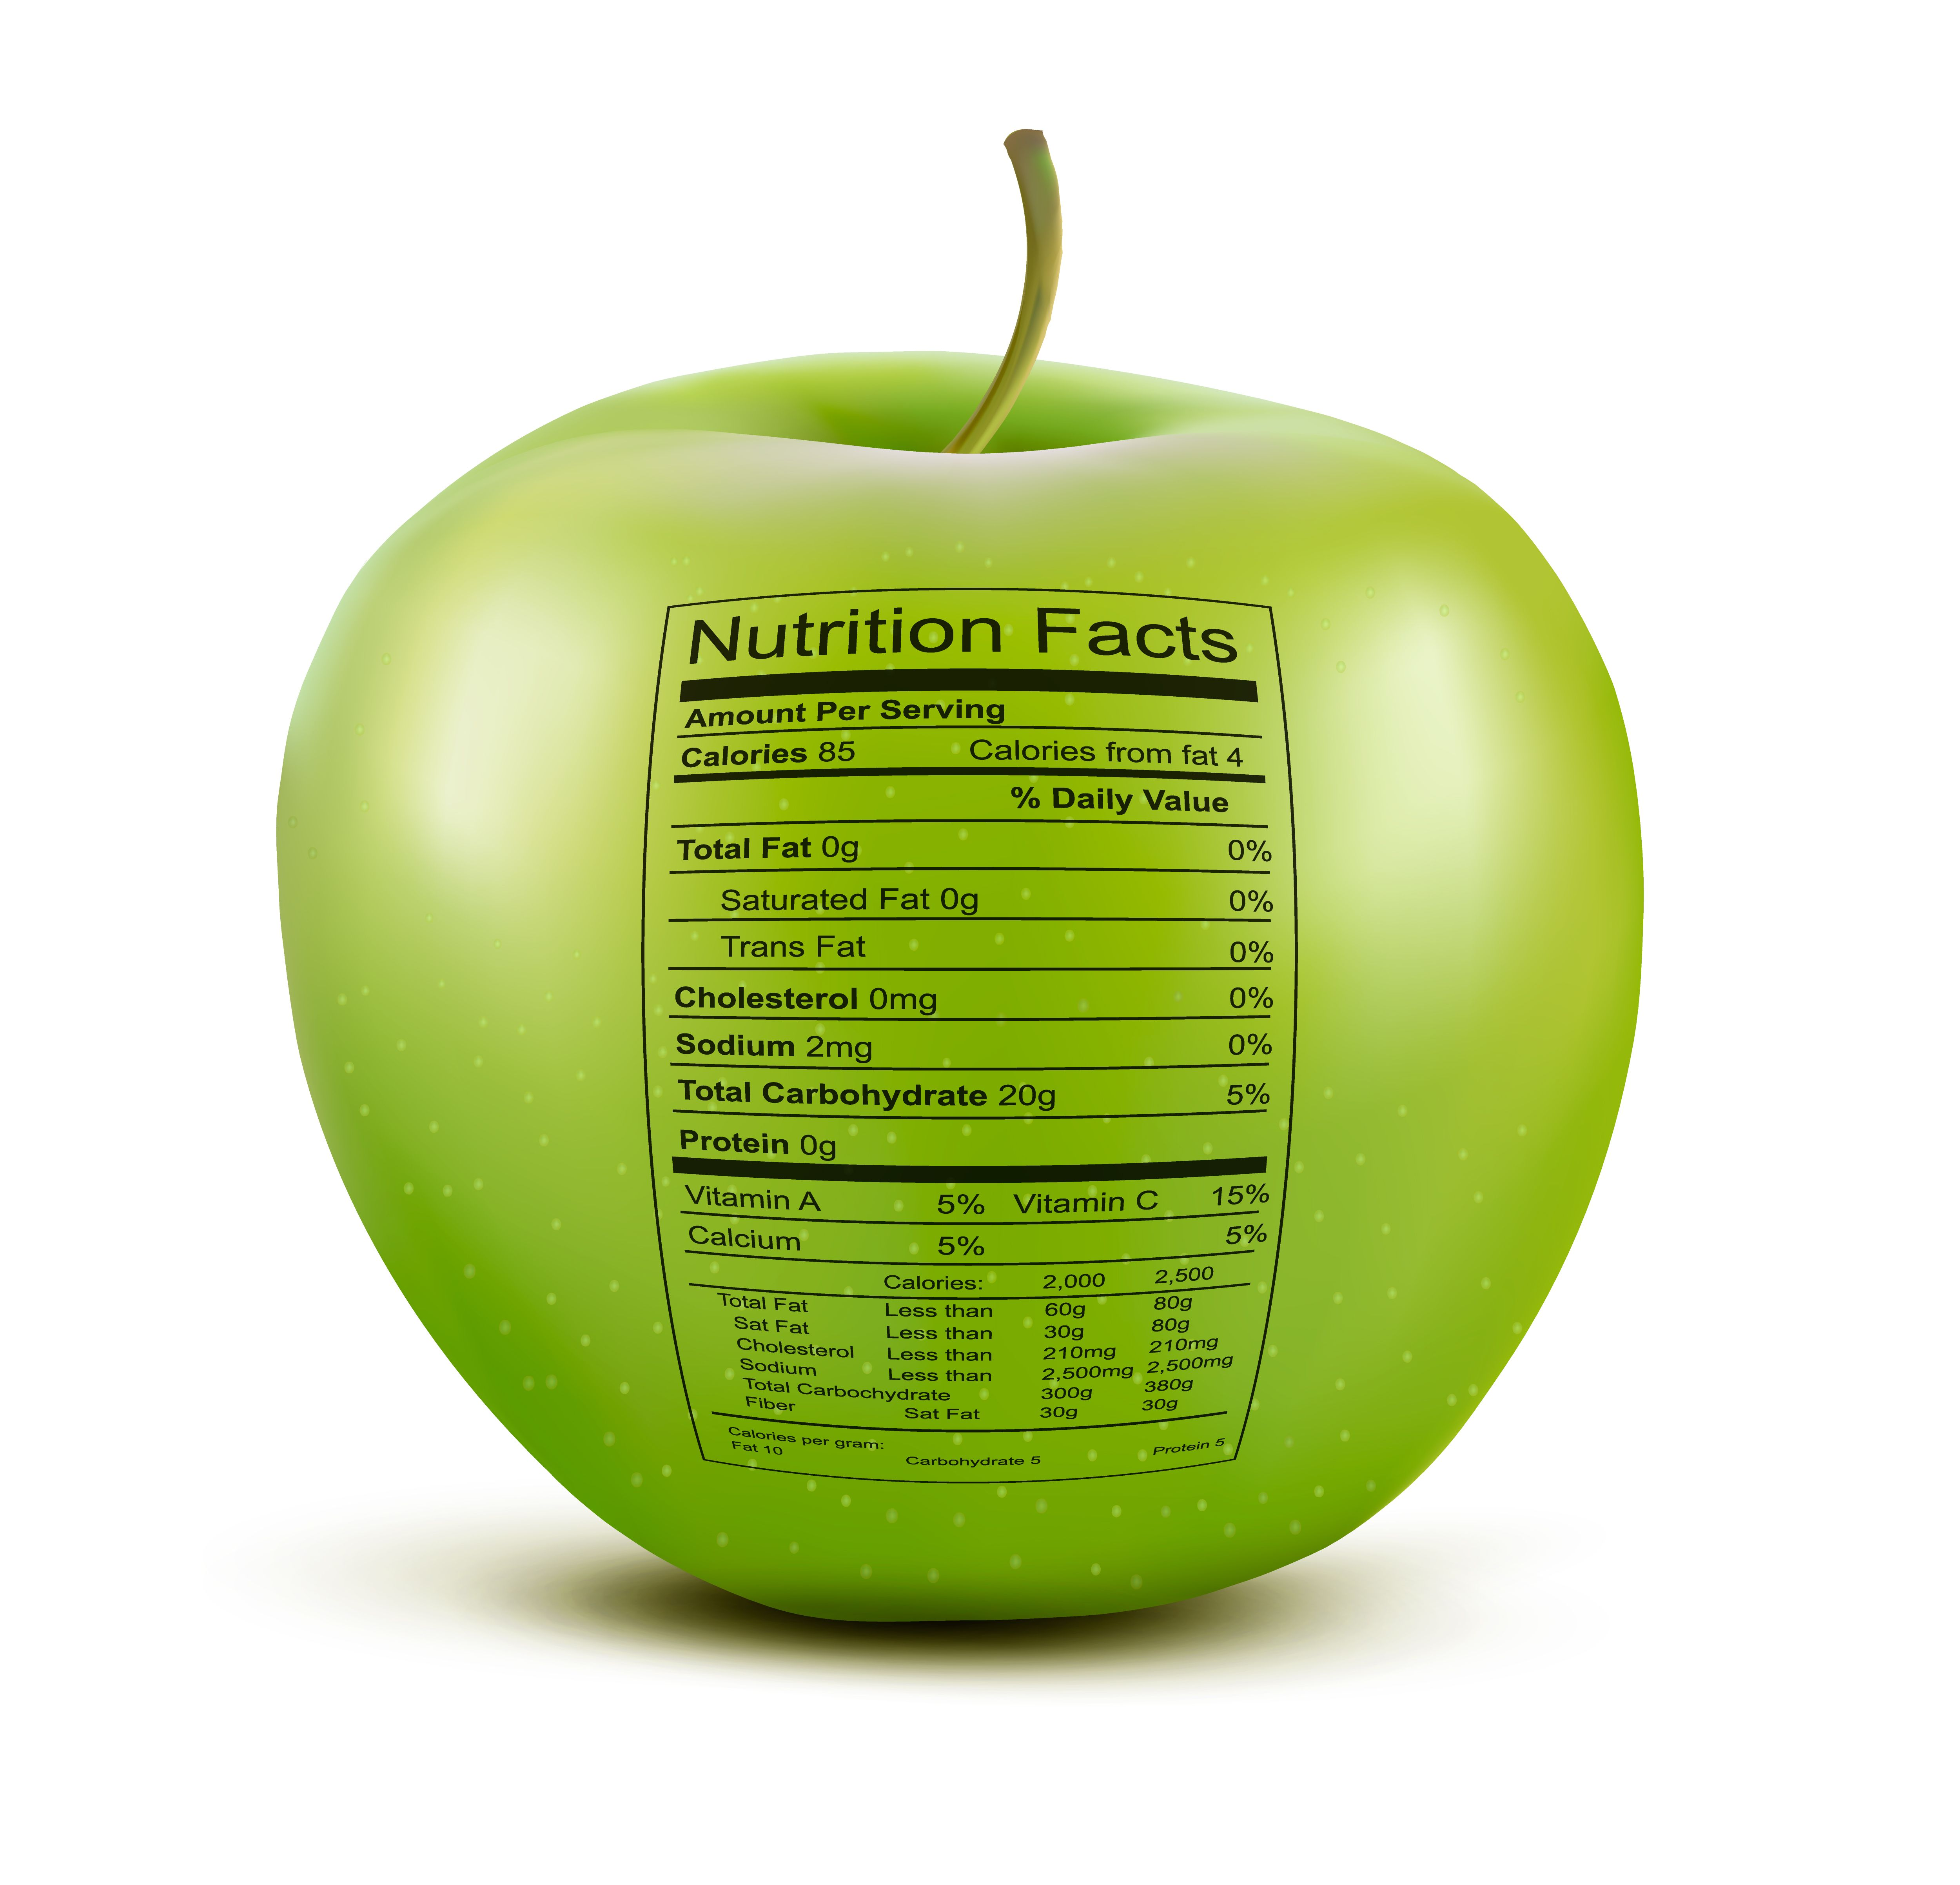 Low Glycemic Diets: How Do They Work? - http://www.myweightlossfun.com/diets/low-glycemic-diets-work/